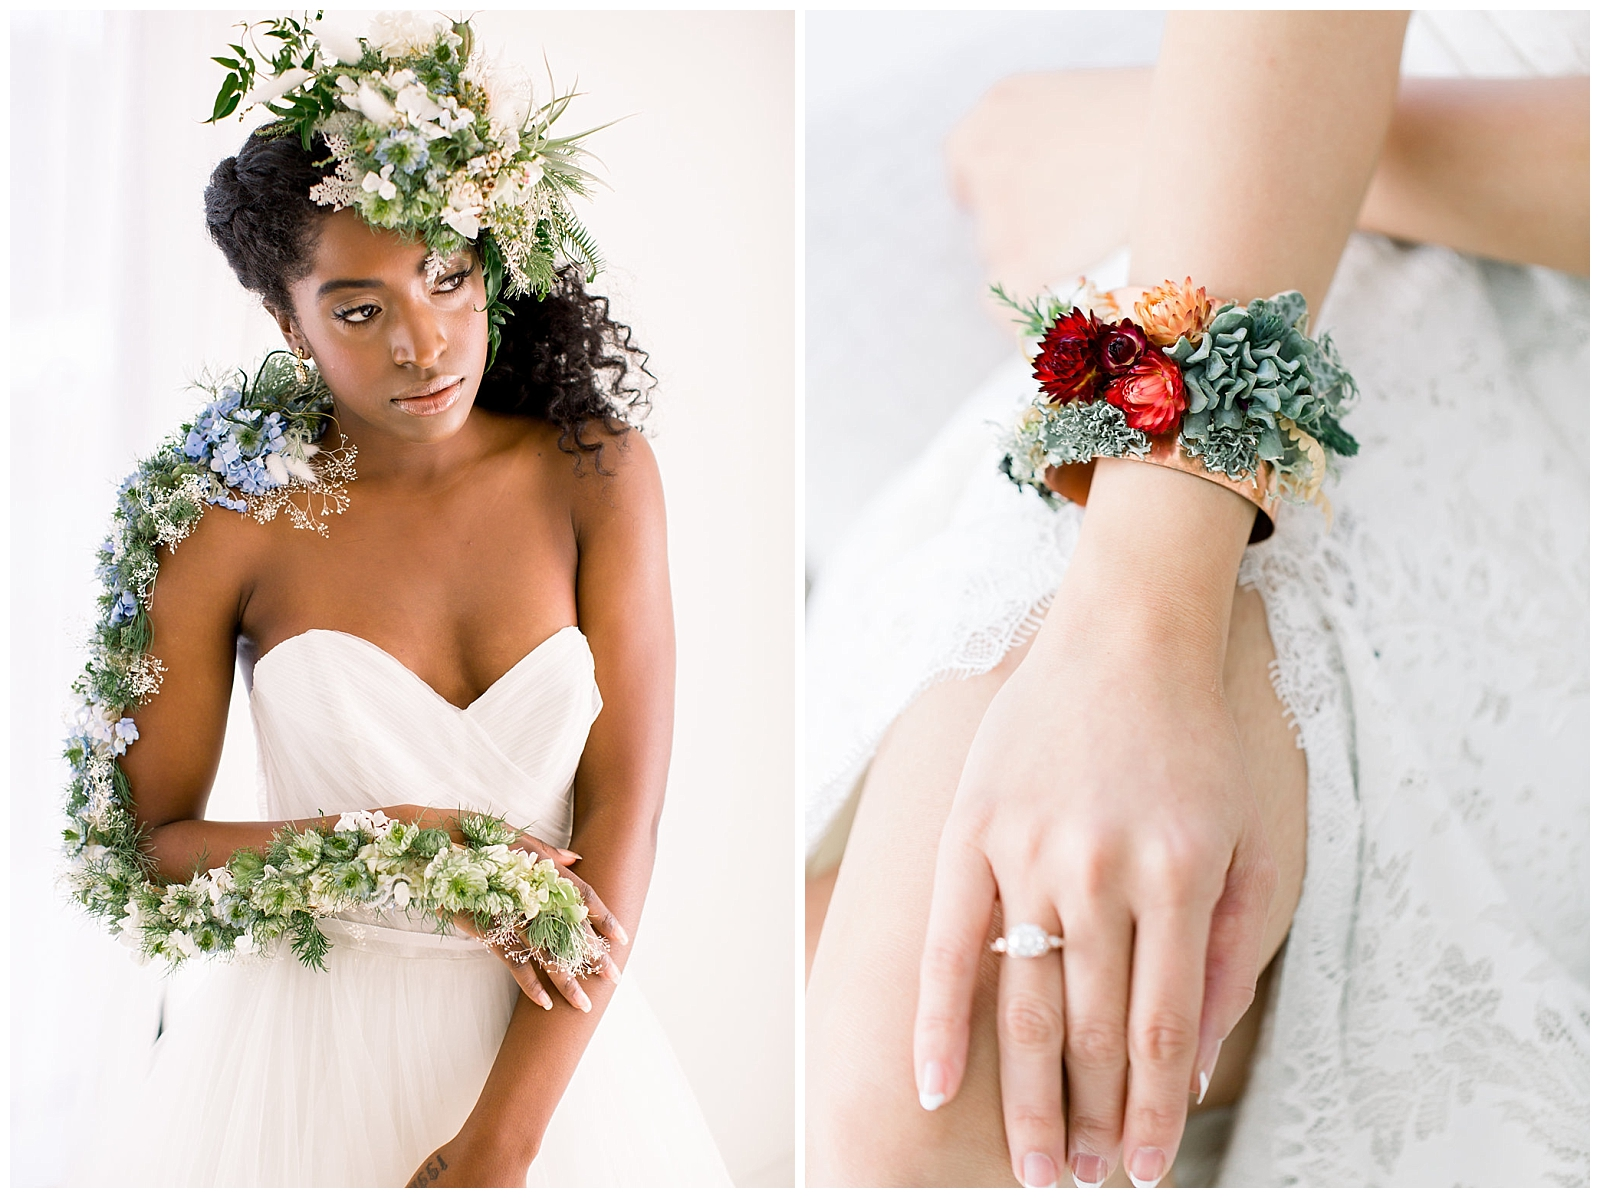 Living-Accessories-styled-shoot-de-joy-photography-epiphany-boutique-arm-accessory.jpg